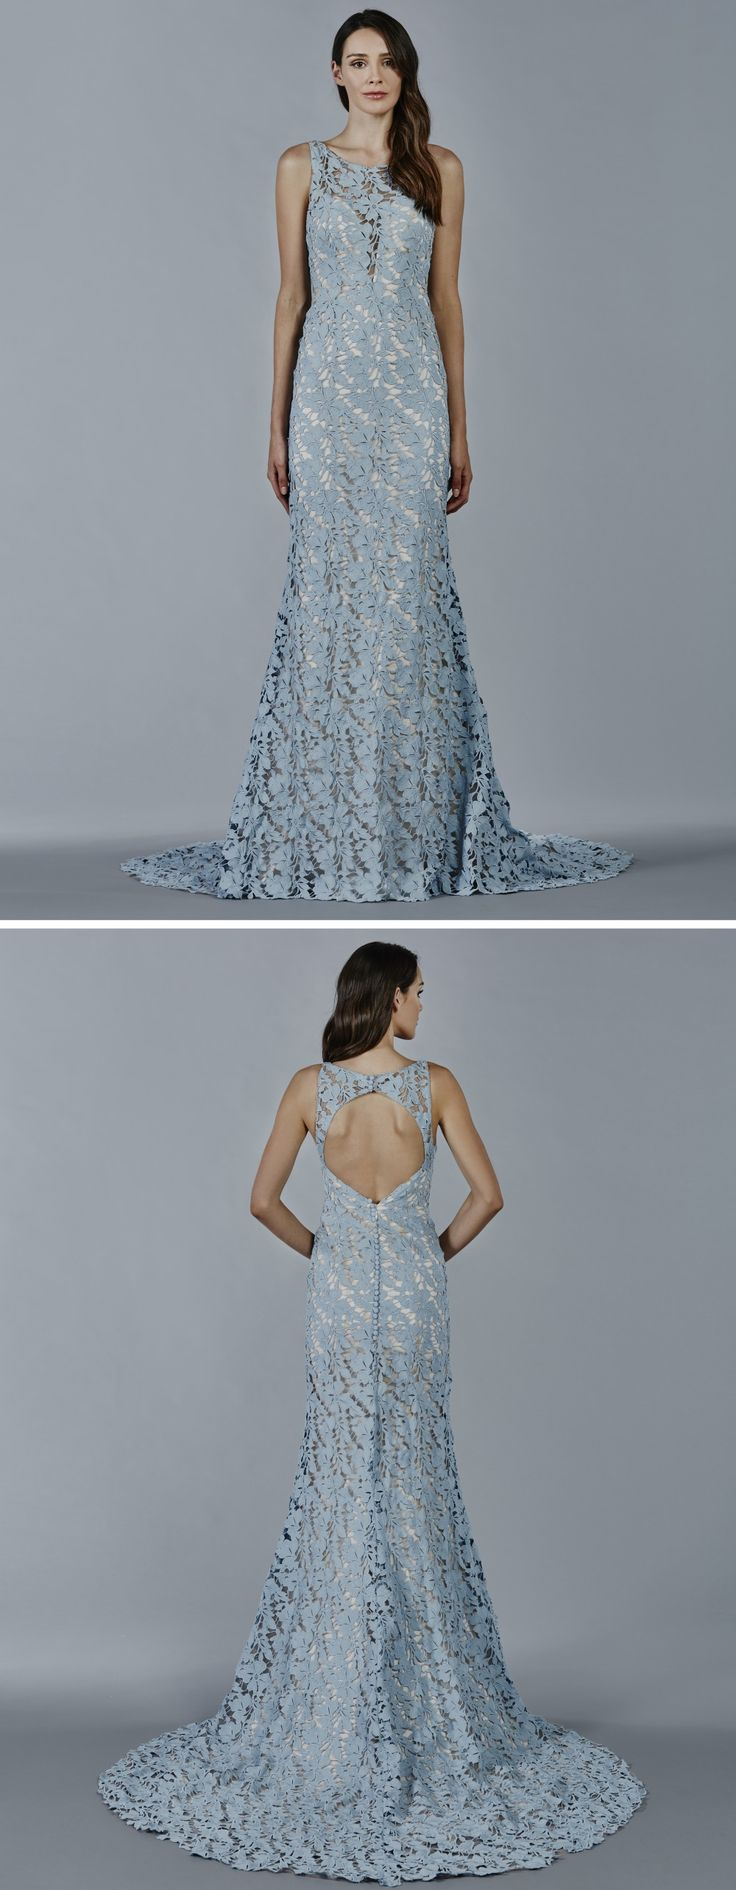 70 best Something Blue images on Pinterest | Blue weddings, Bride ...